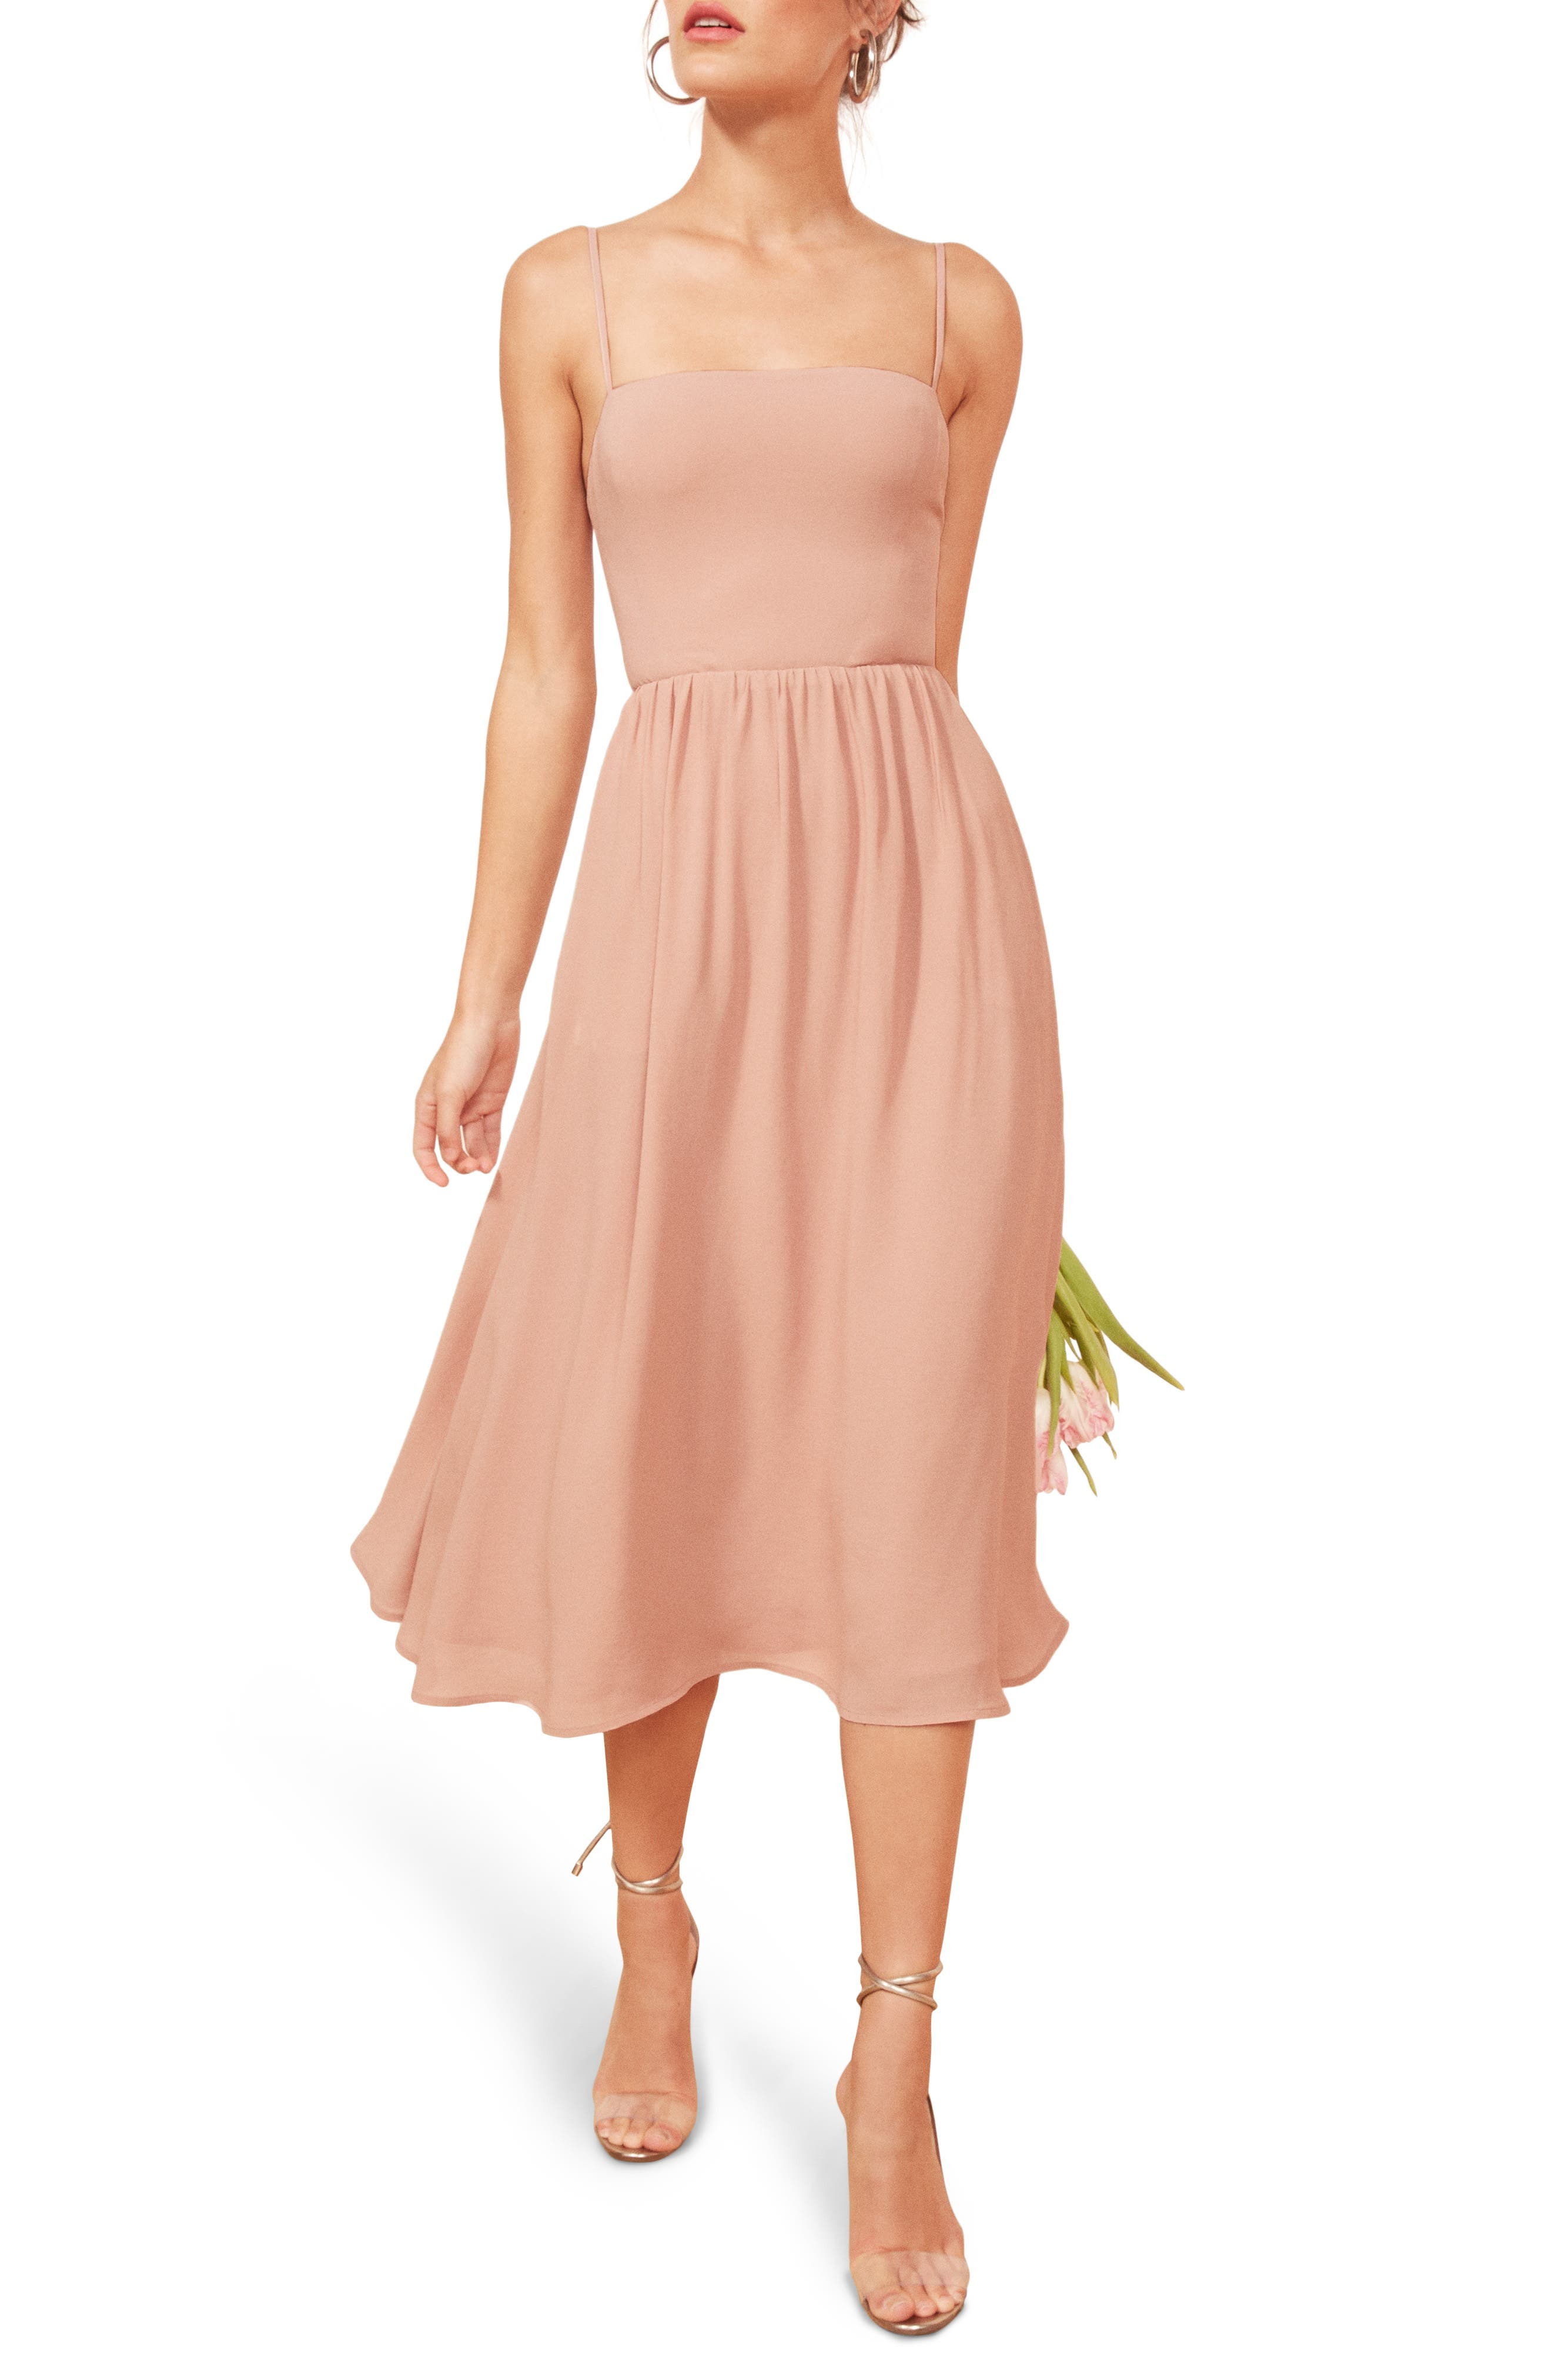 REFORMATION, Rosehip Fit & Flare Dress, Main thumbnail 1, color, BLUSH